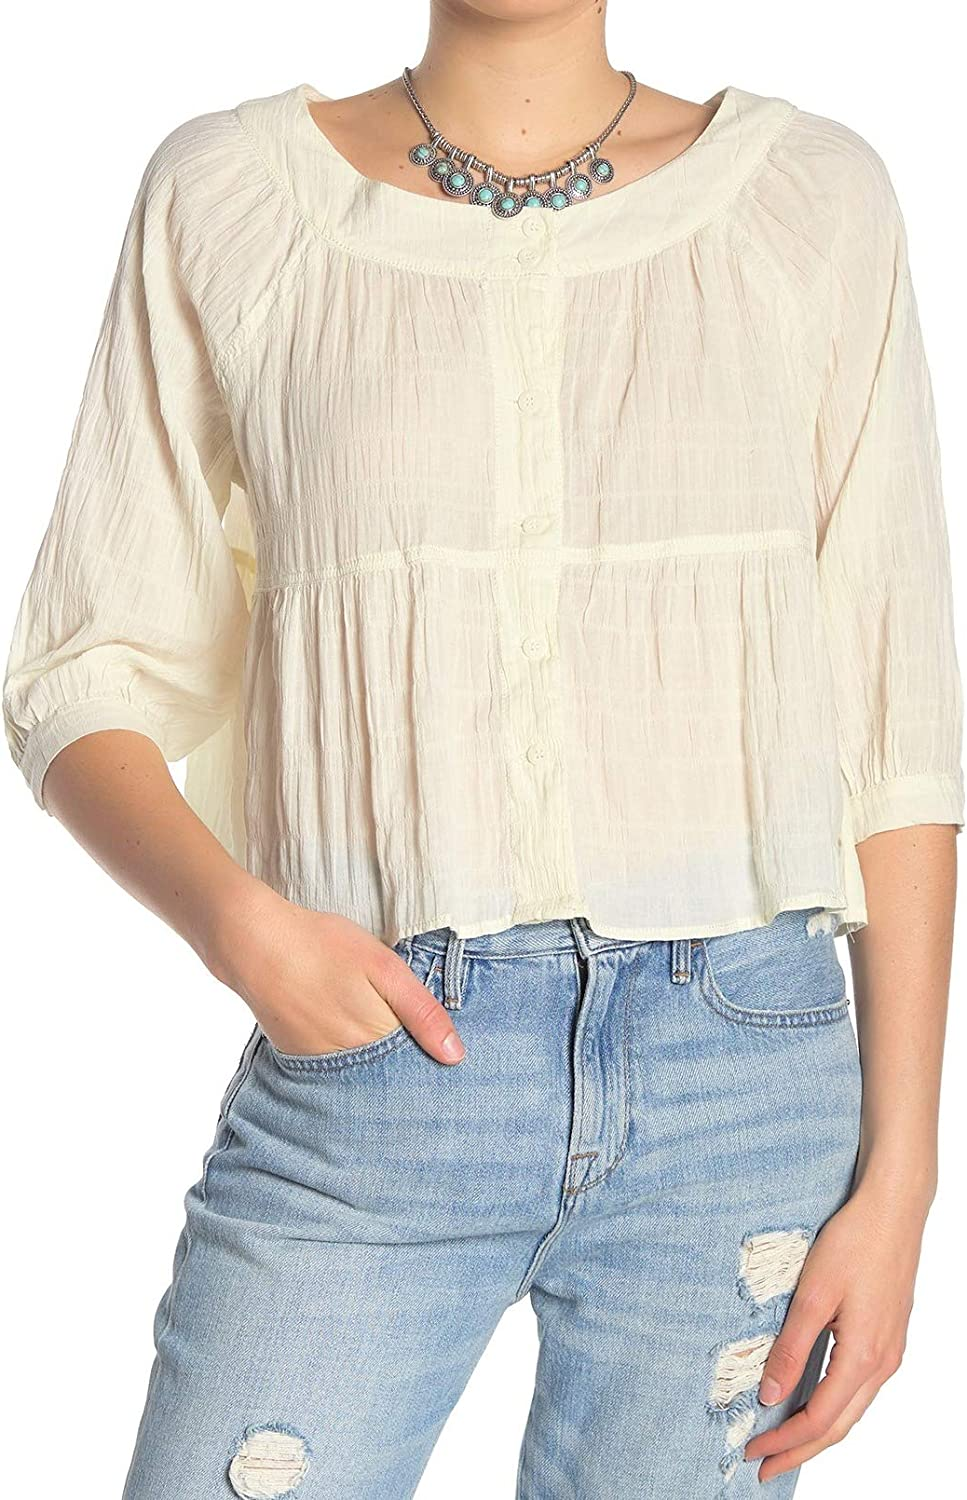 Free People Women's Sea to Shore Blouse